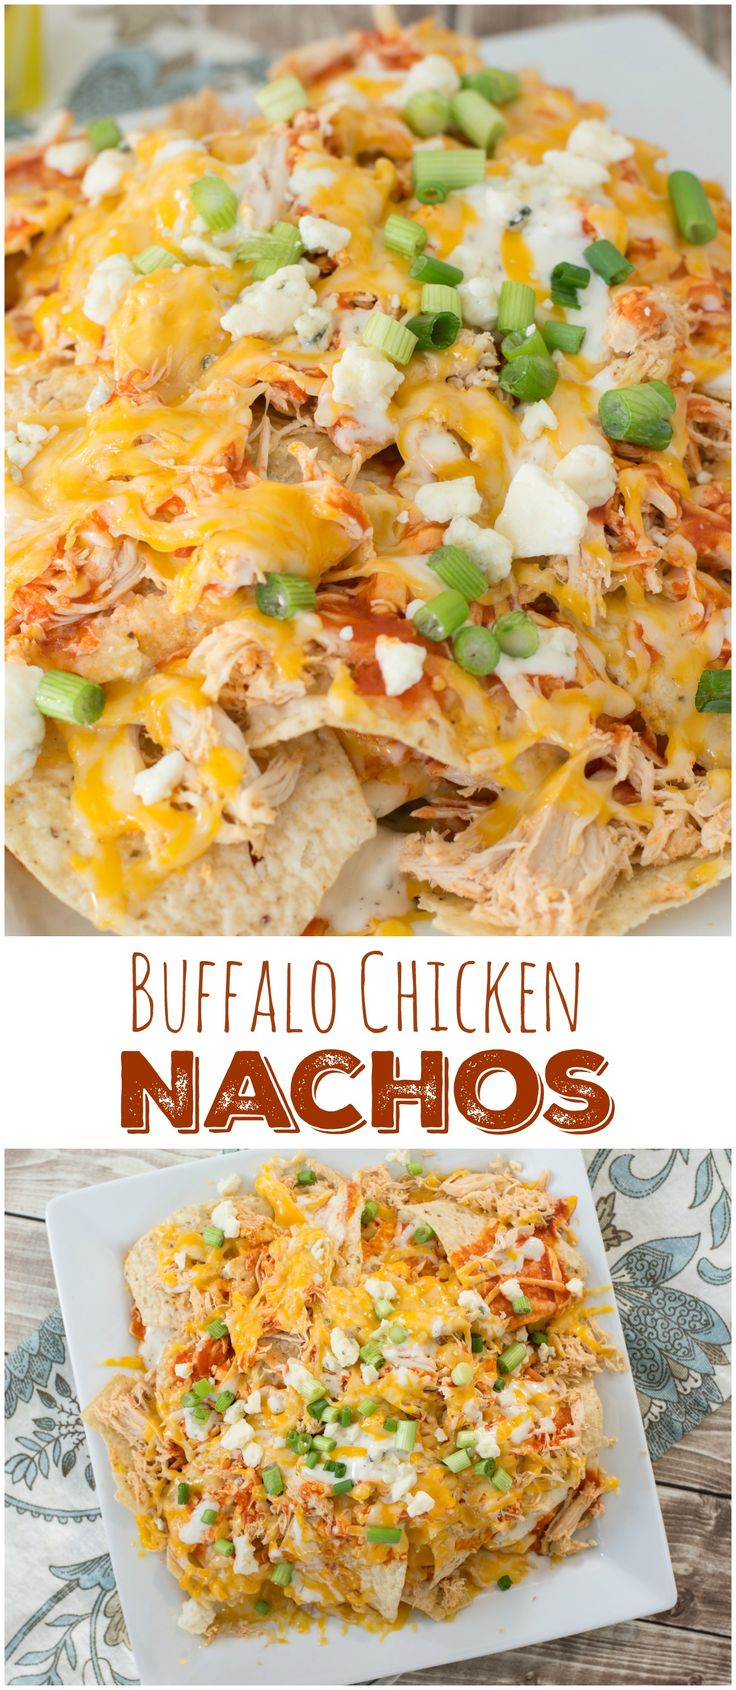 Loaded with chicken, ranch dressing, shredded cheese, and topped with bleu cheese crumbles, these Buffalo Chicken Nachos will be the talk of the town.